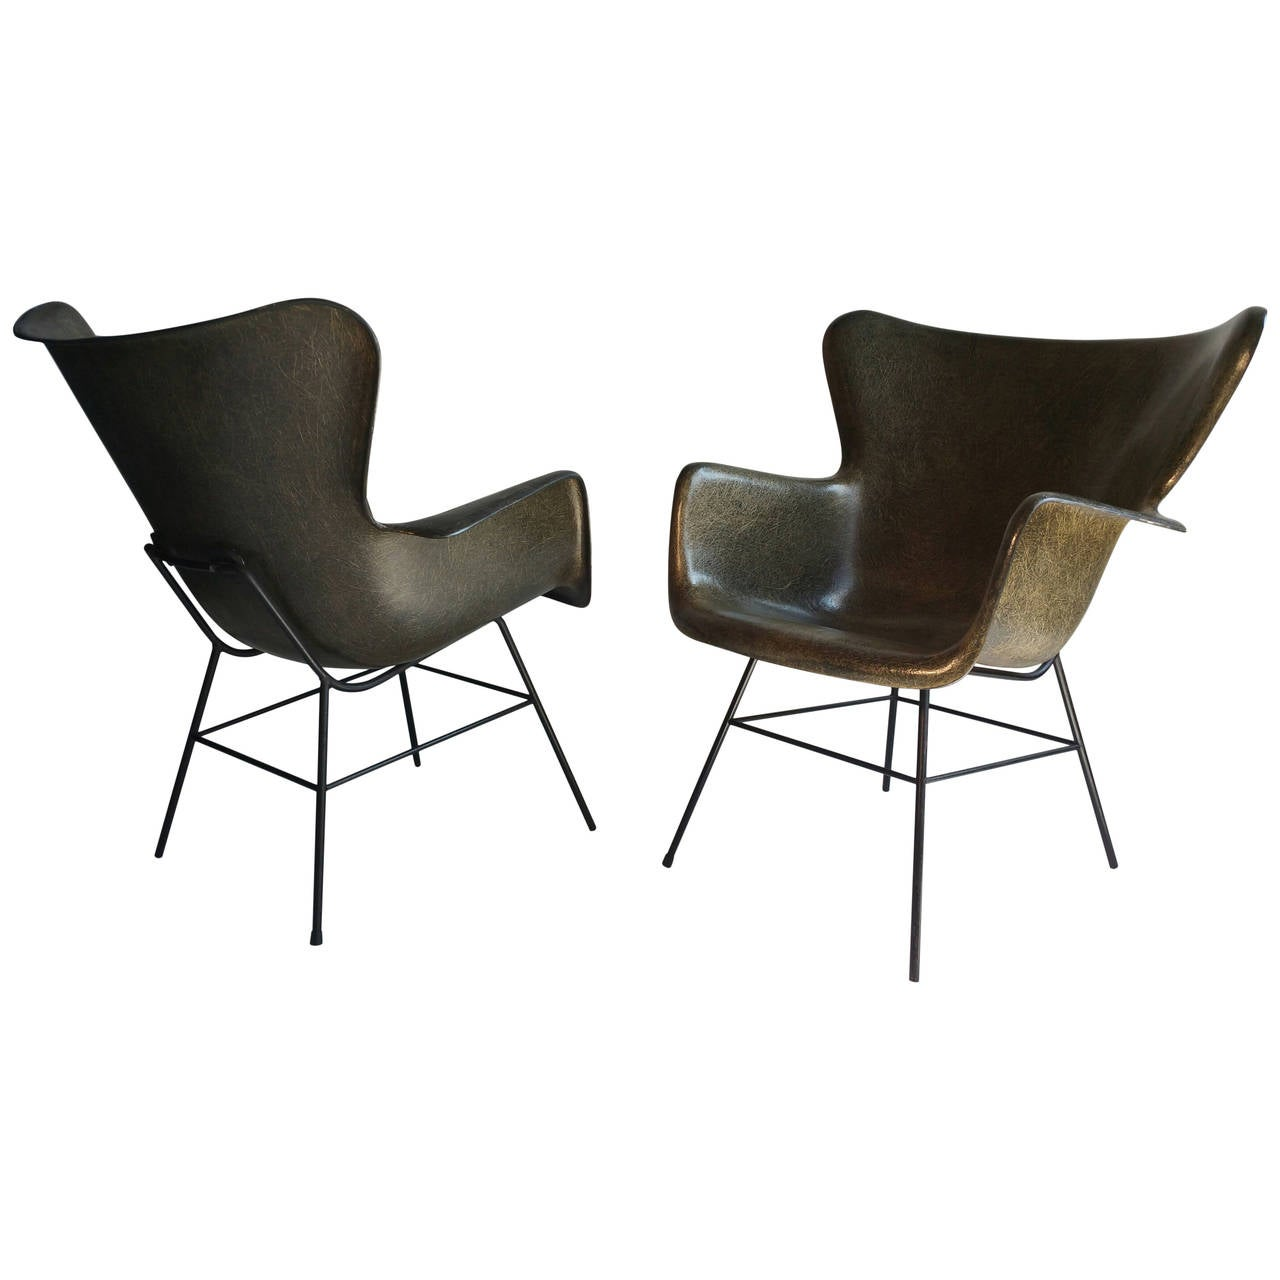 Living Room Lounge Chairs Sale pair of luther conover molded fiberglass lounge chairs for sale at 1